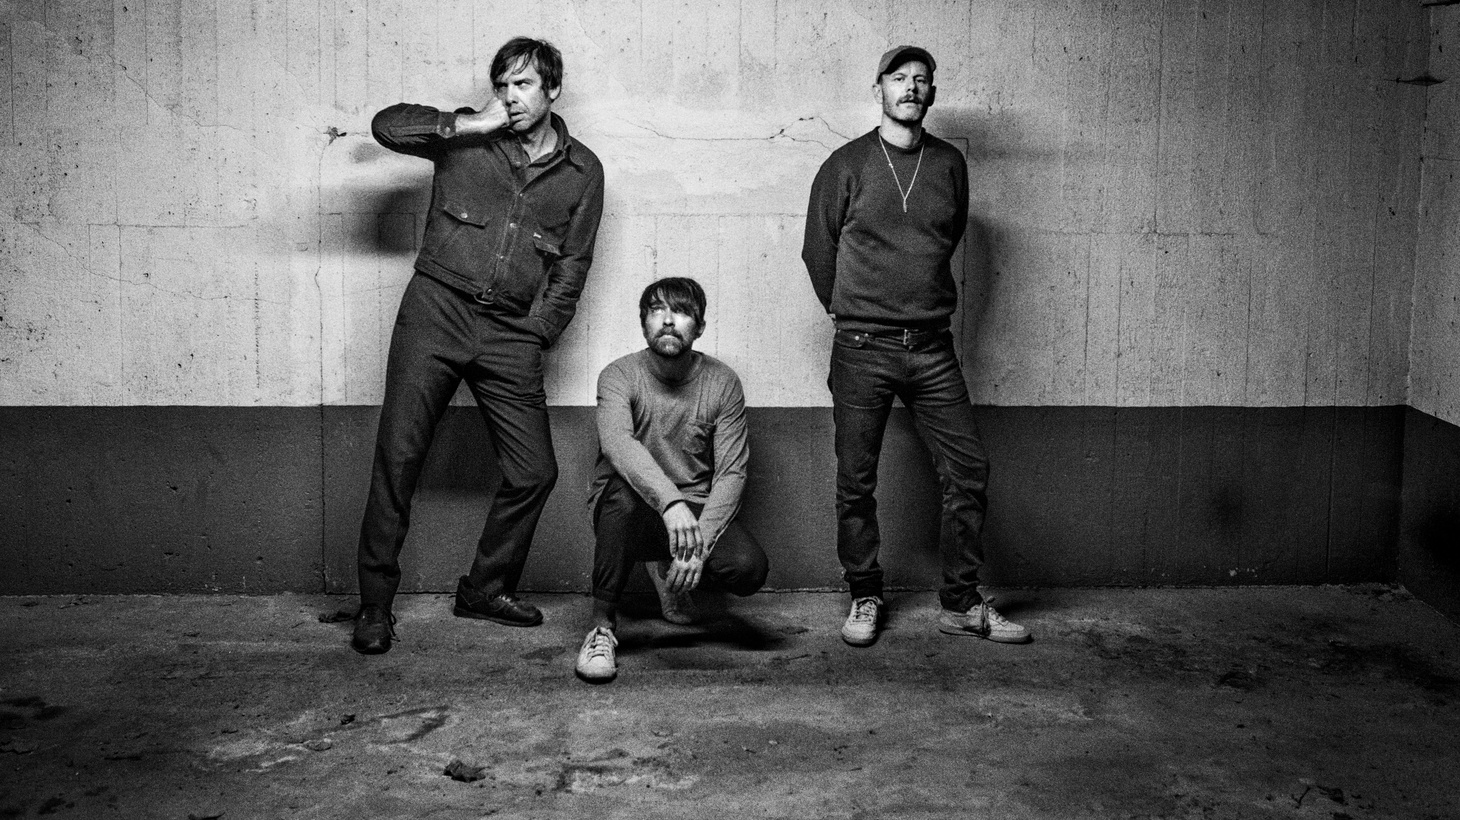 The new album Darker Days from Peter Bjorn and John found them all writing and producing.